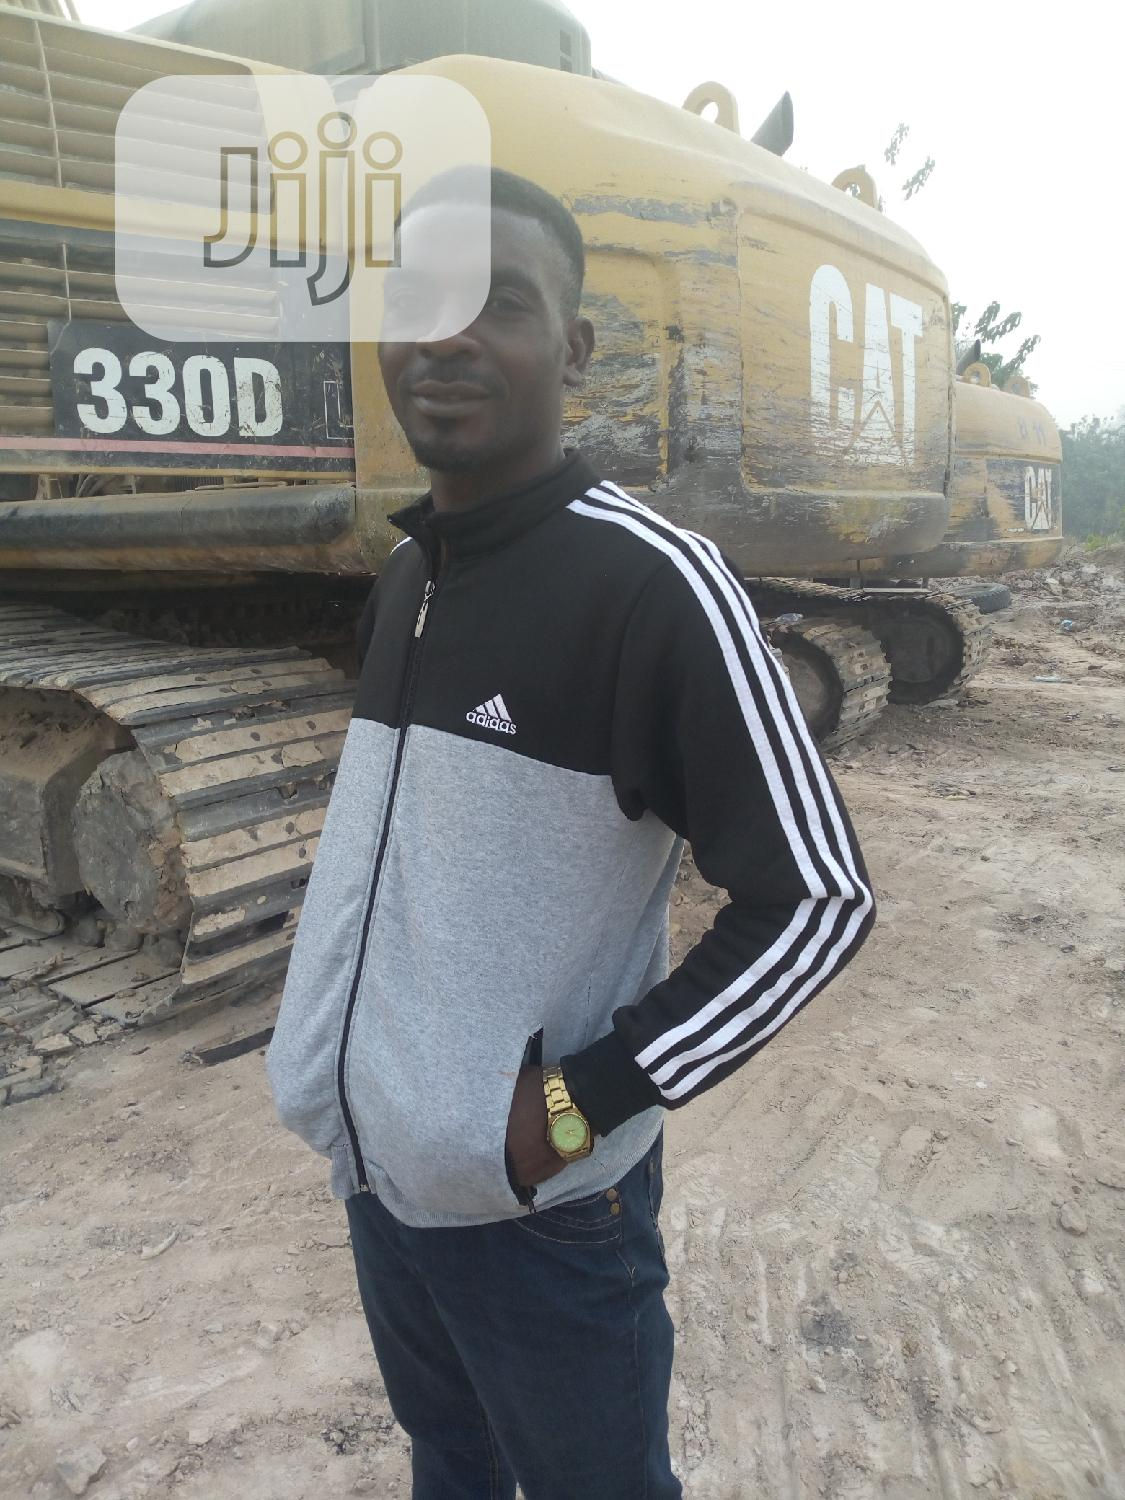 I'm A Good Operator With Good Experience   Mining Industry CVs for sale in Kuje, Abuja (FCT) State, Nigeria